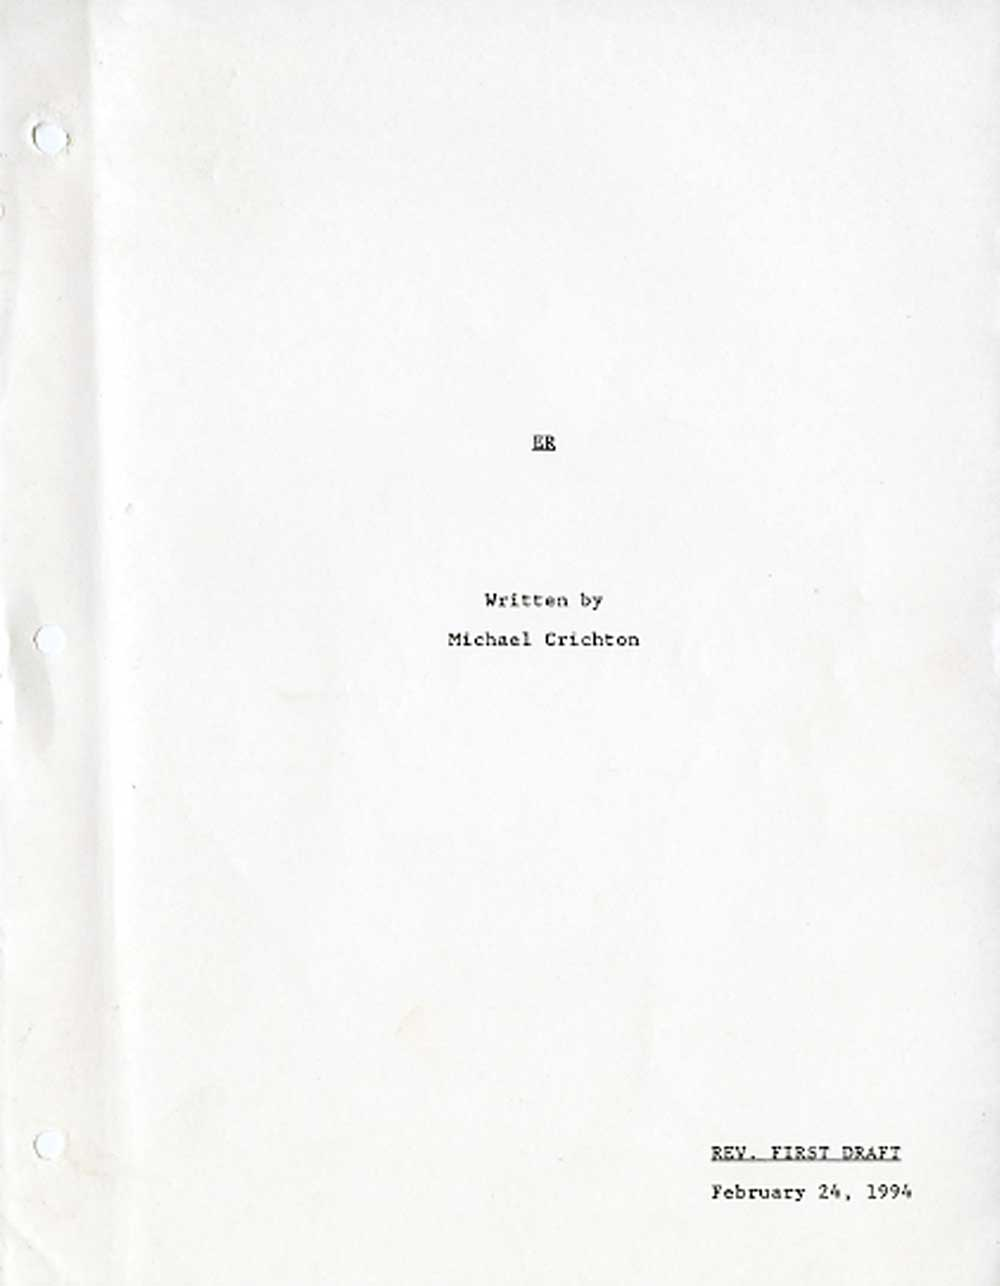 ER screenplay written by Michael Crichton